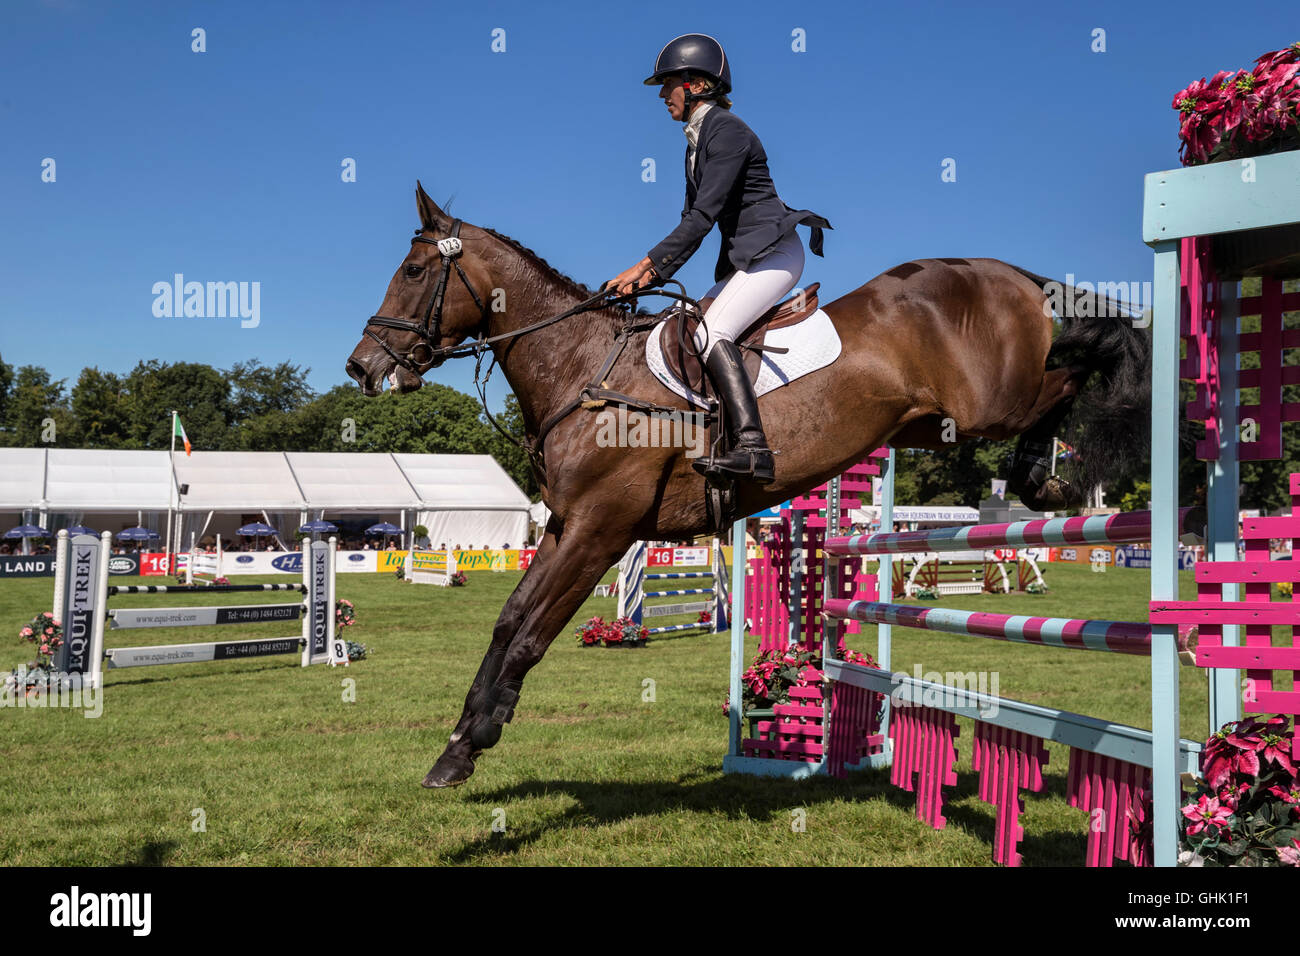 Katie Barber on Woodfield Ria - Stock Image